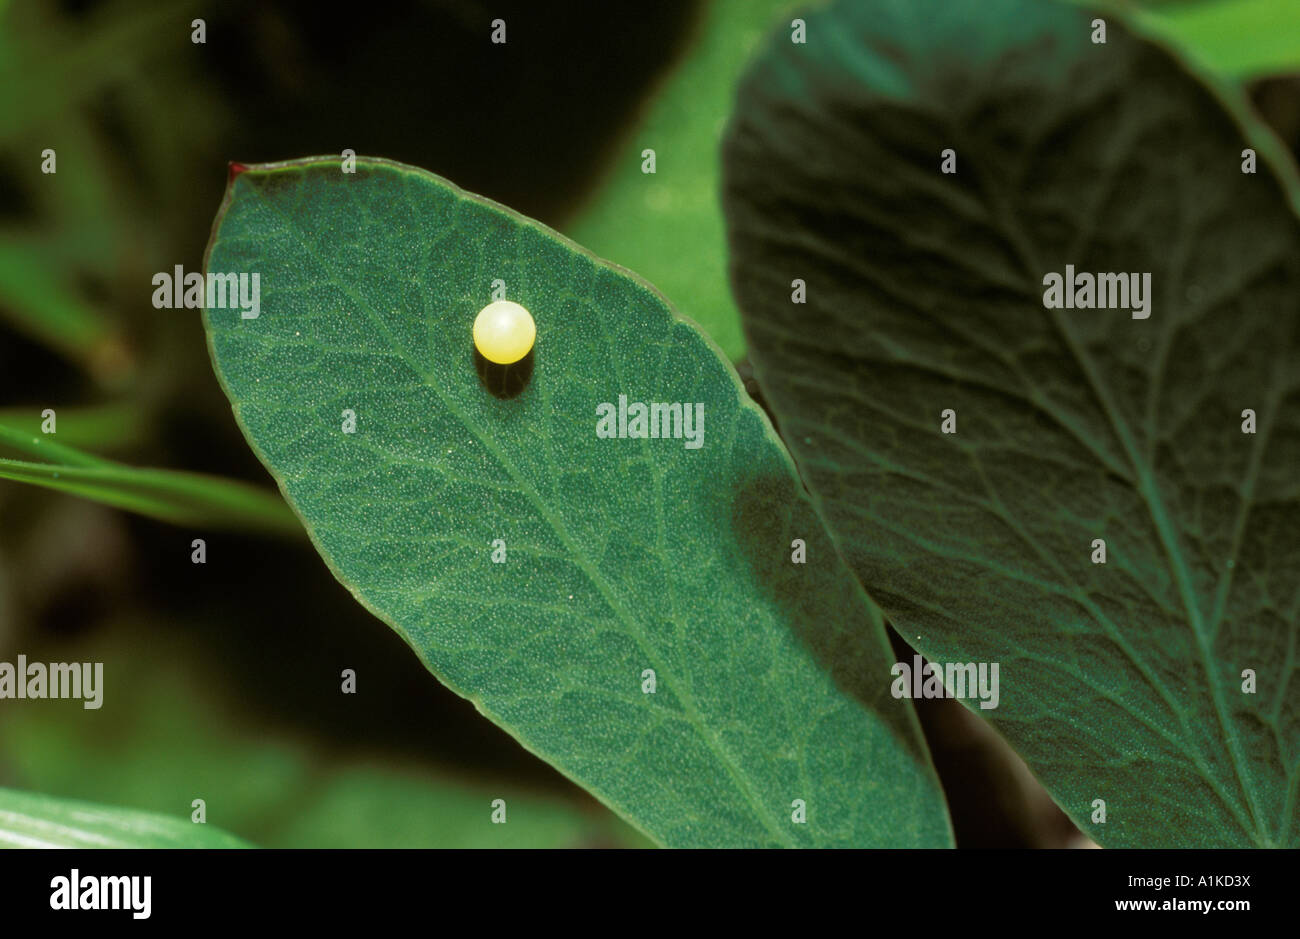 Egg of Swallowtail (Papilio machaon) on clover, Germany - Stock Image